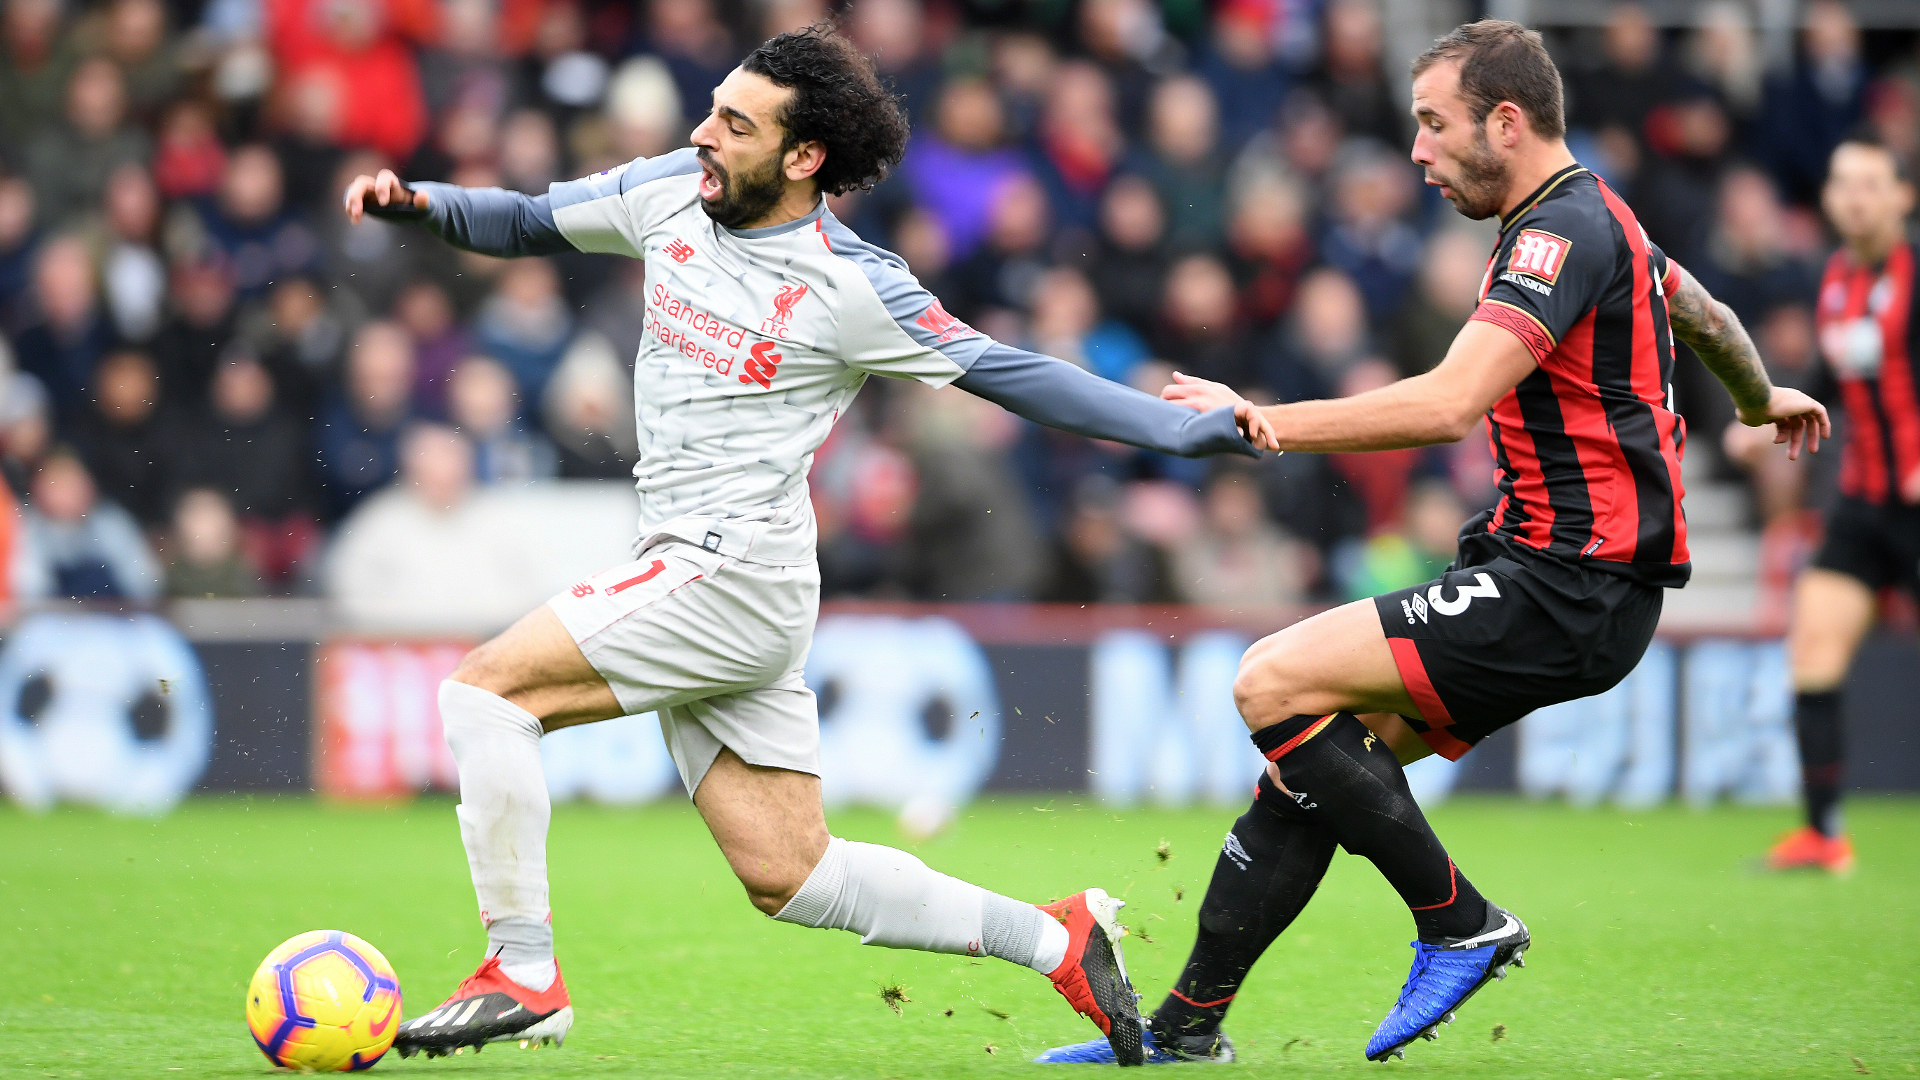 Salah Humbly Refuses MOTM Award, Gives It To Milner Instead